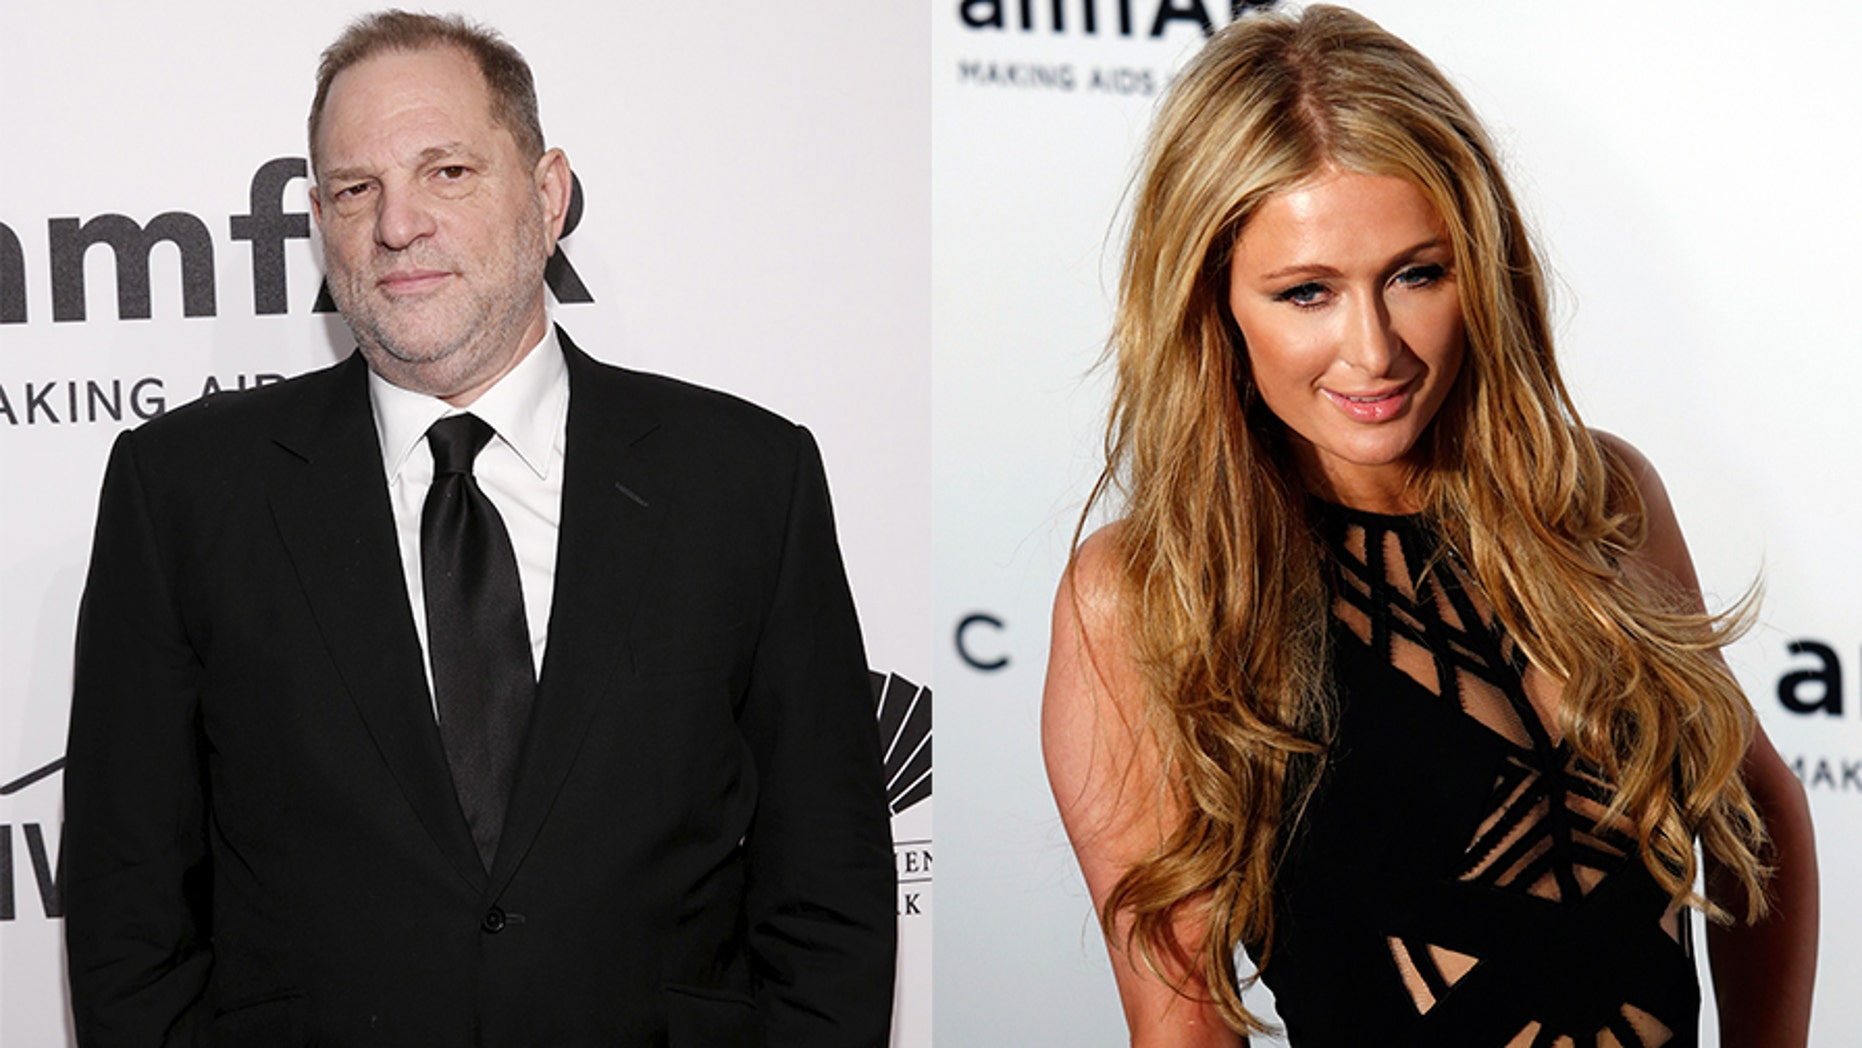 Harvey Weinstein reportedly tried to make a move on Paris Hilton in the women's bathroom at the amfAR Gala near Cannes, France, in 2001, when she was just 20 years old.